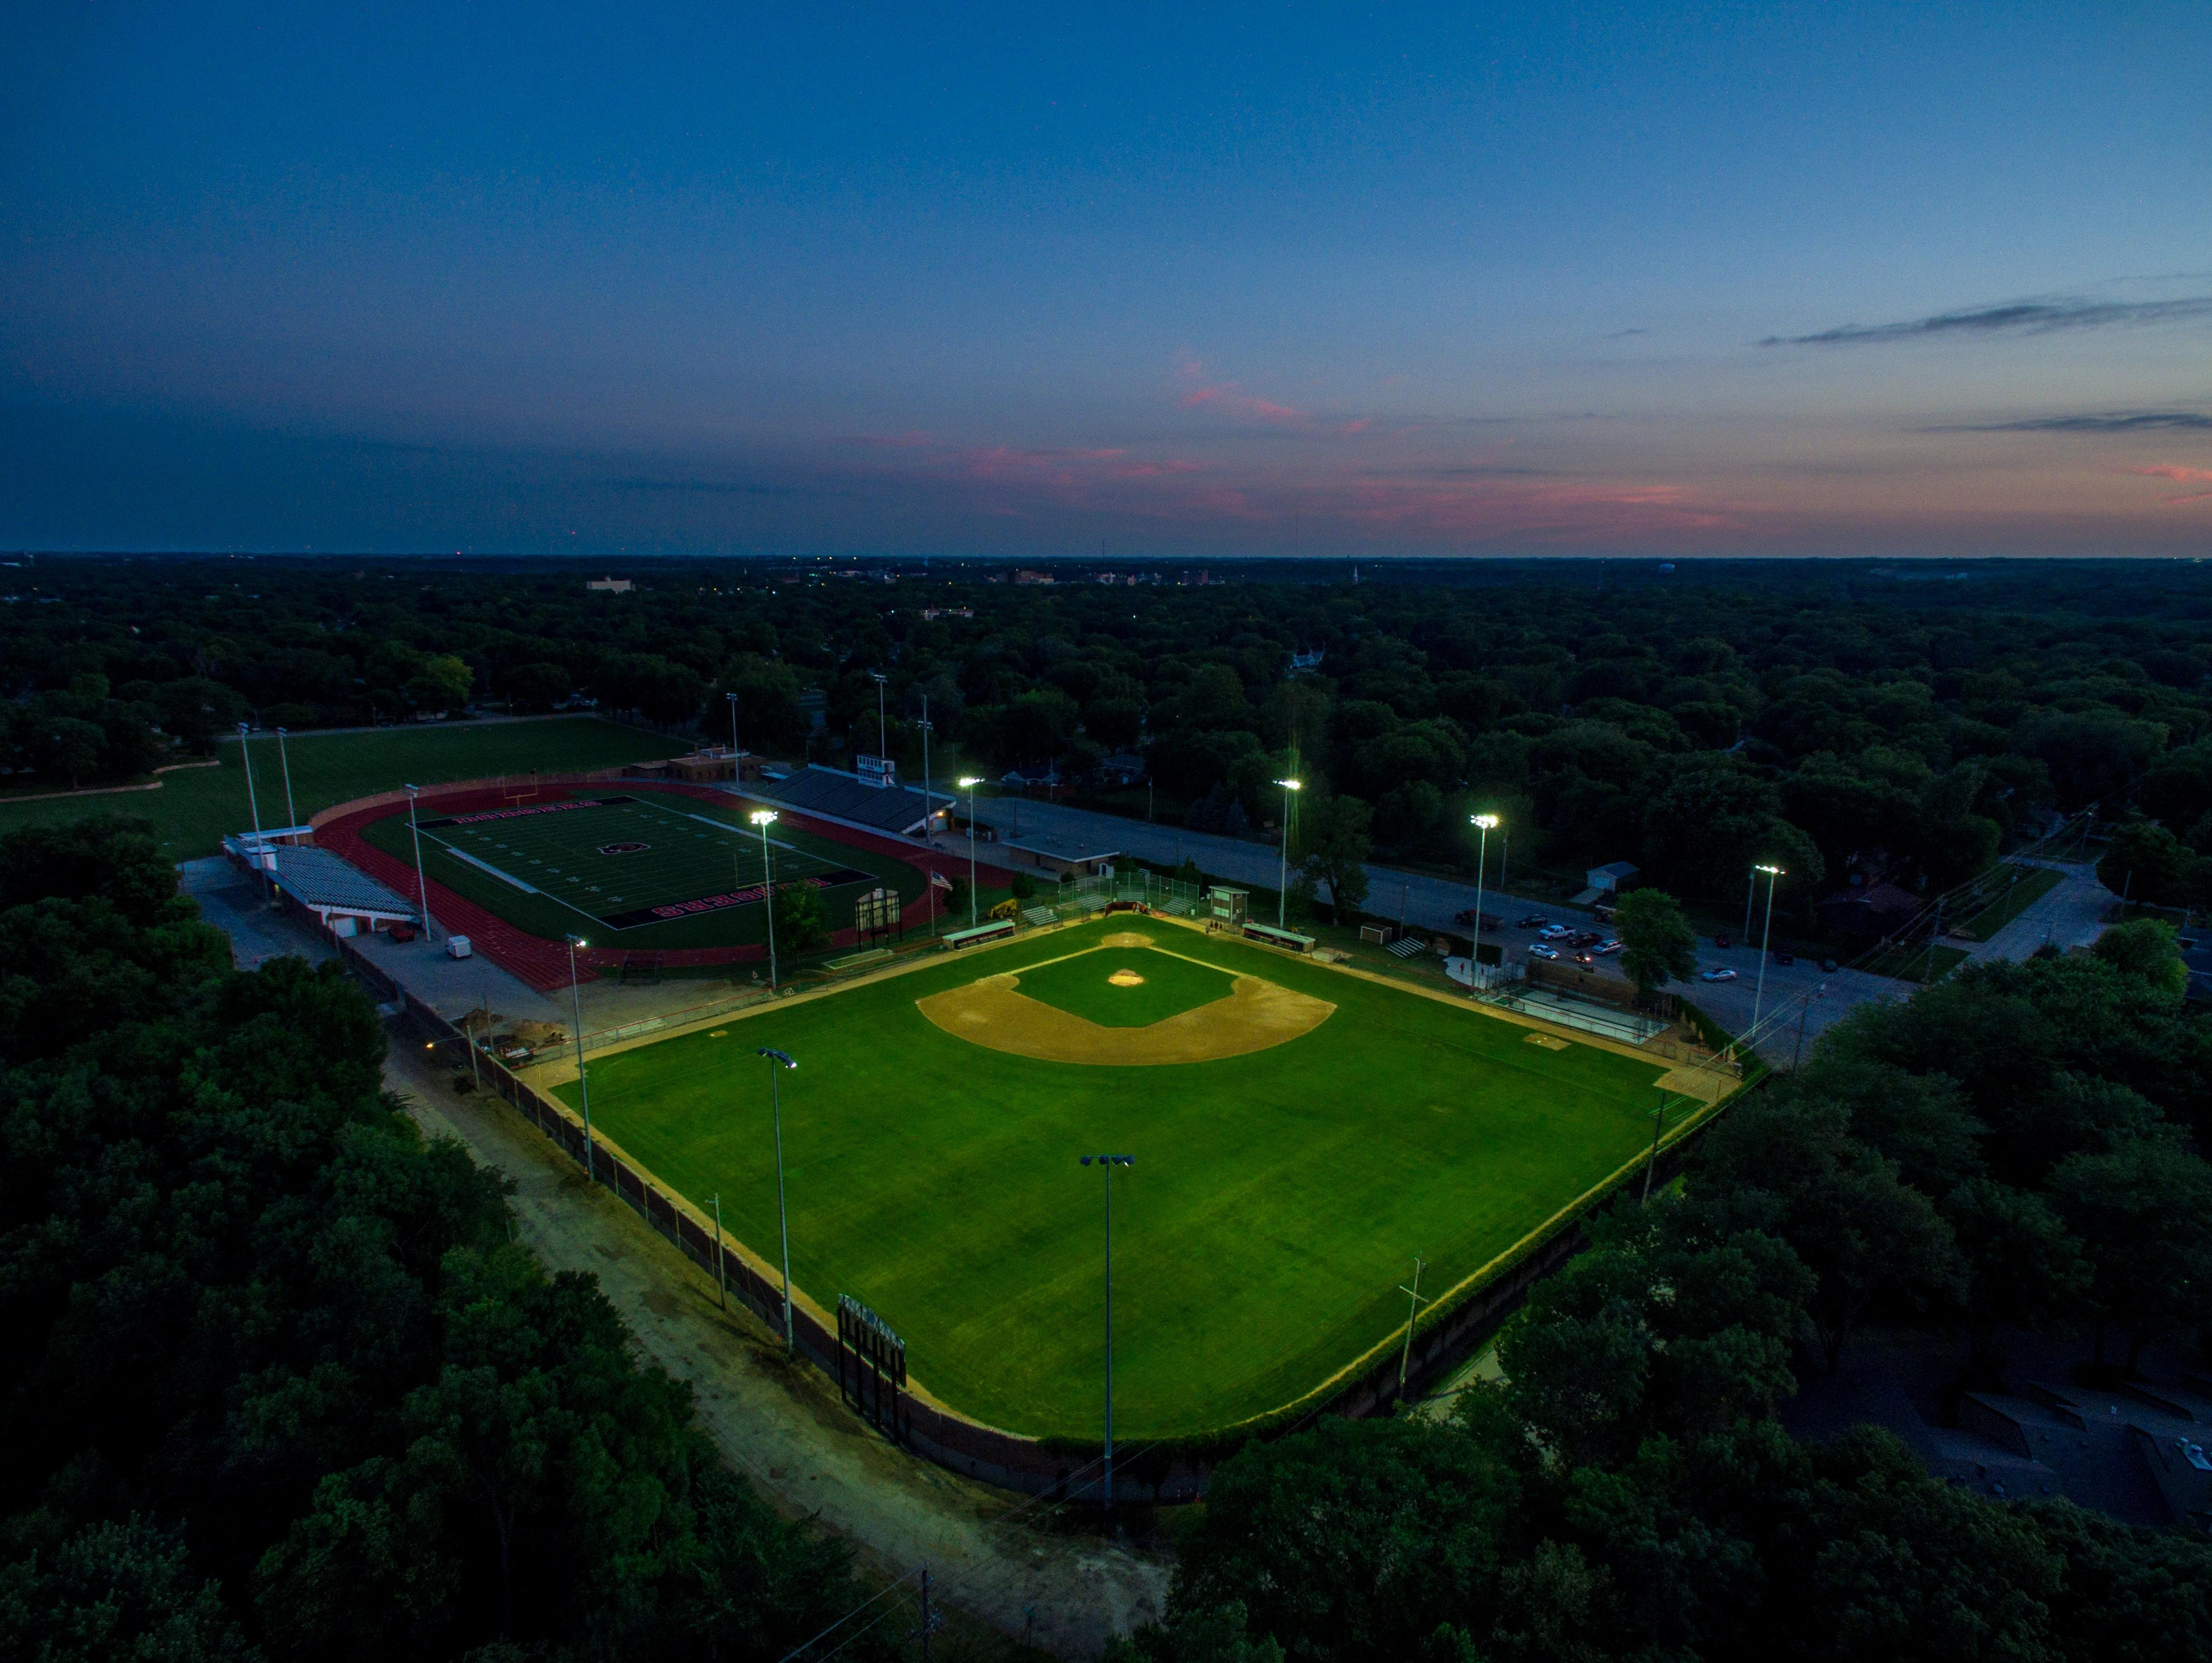 More than seven decades after it was built, Fort Dodge is adding lights to its baseball field since it opened in 1942.